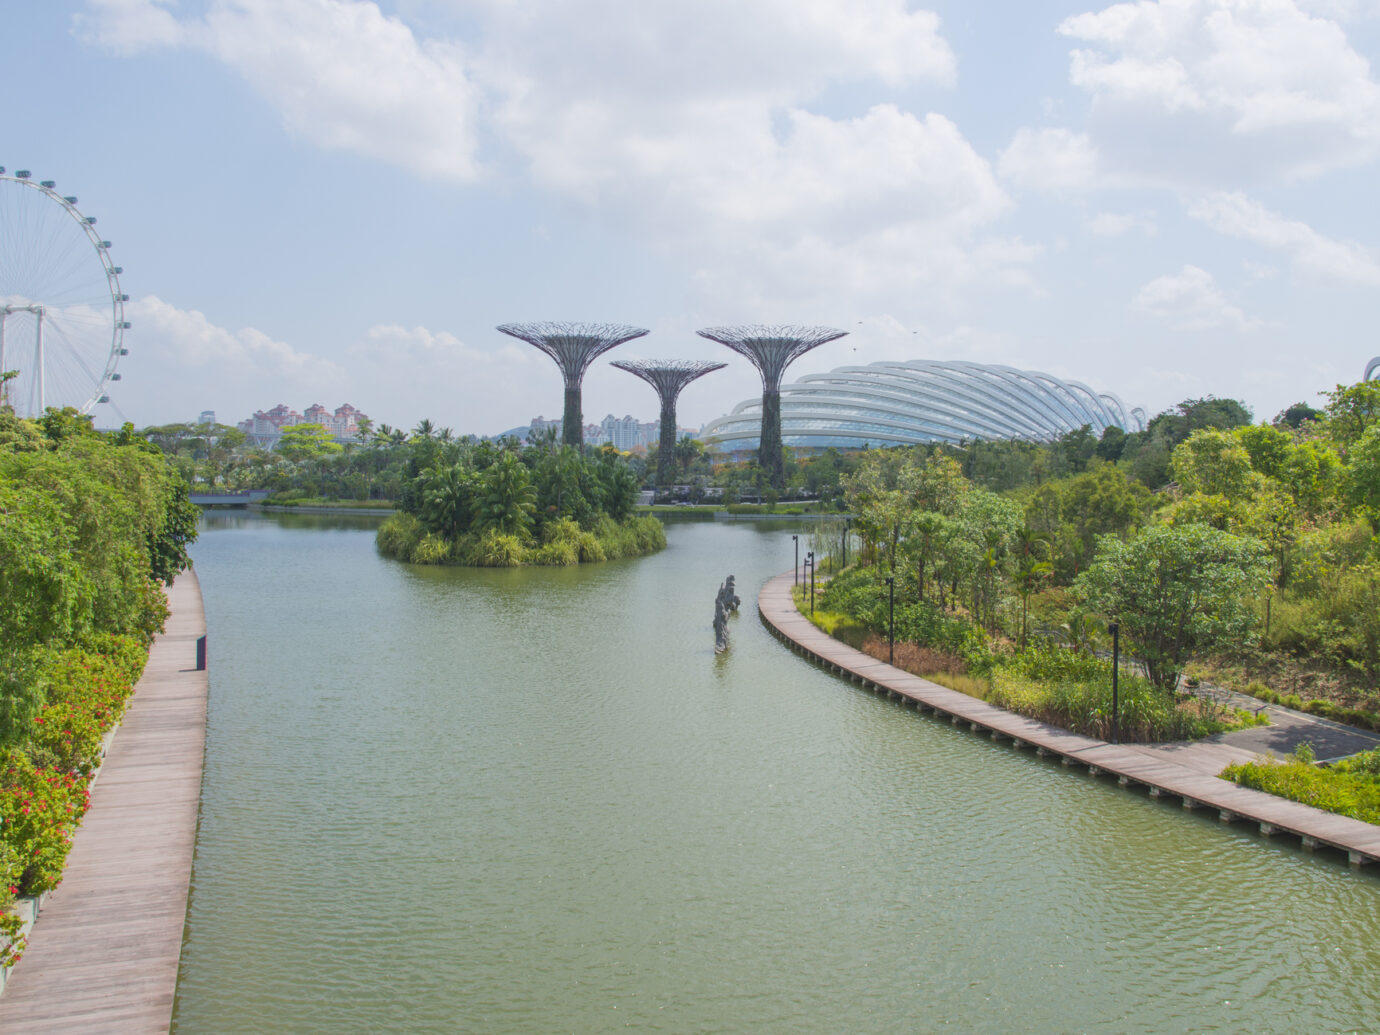 Panoramic view of urban landscape in Singapore.